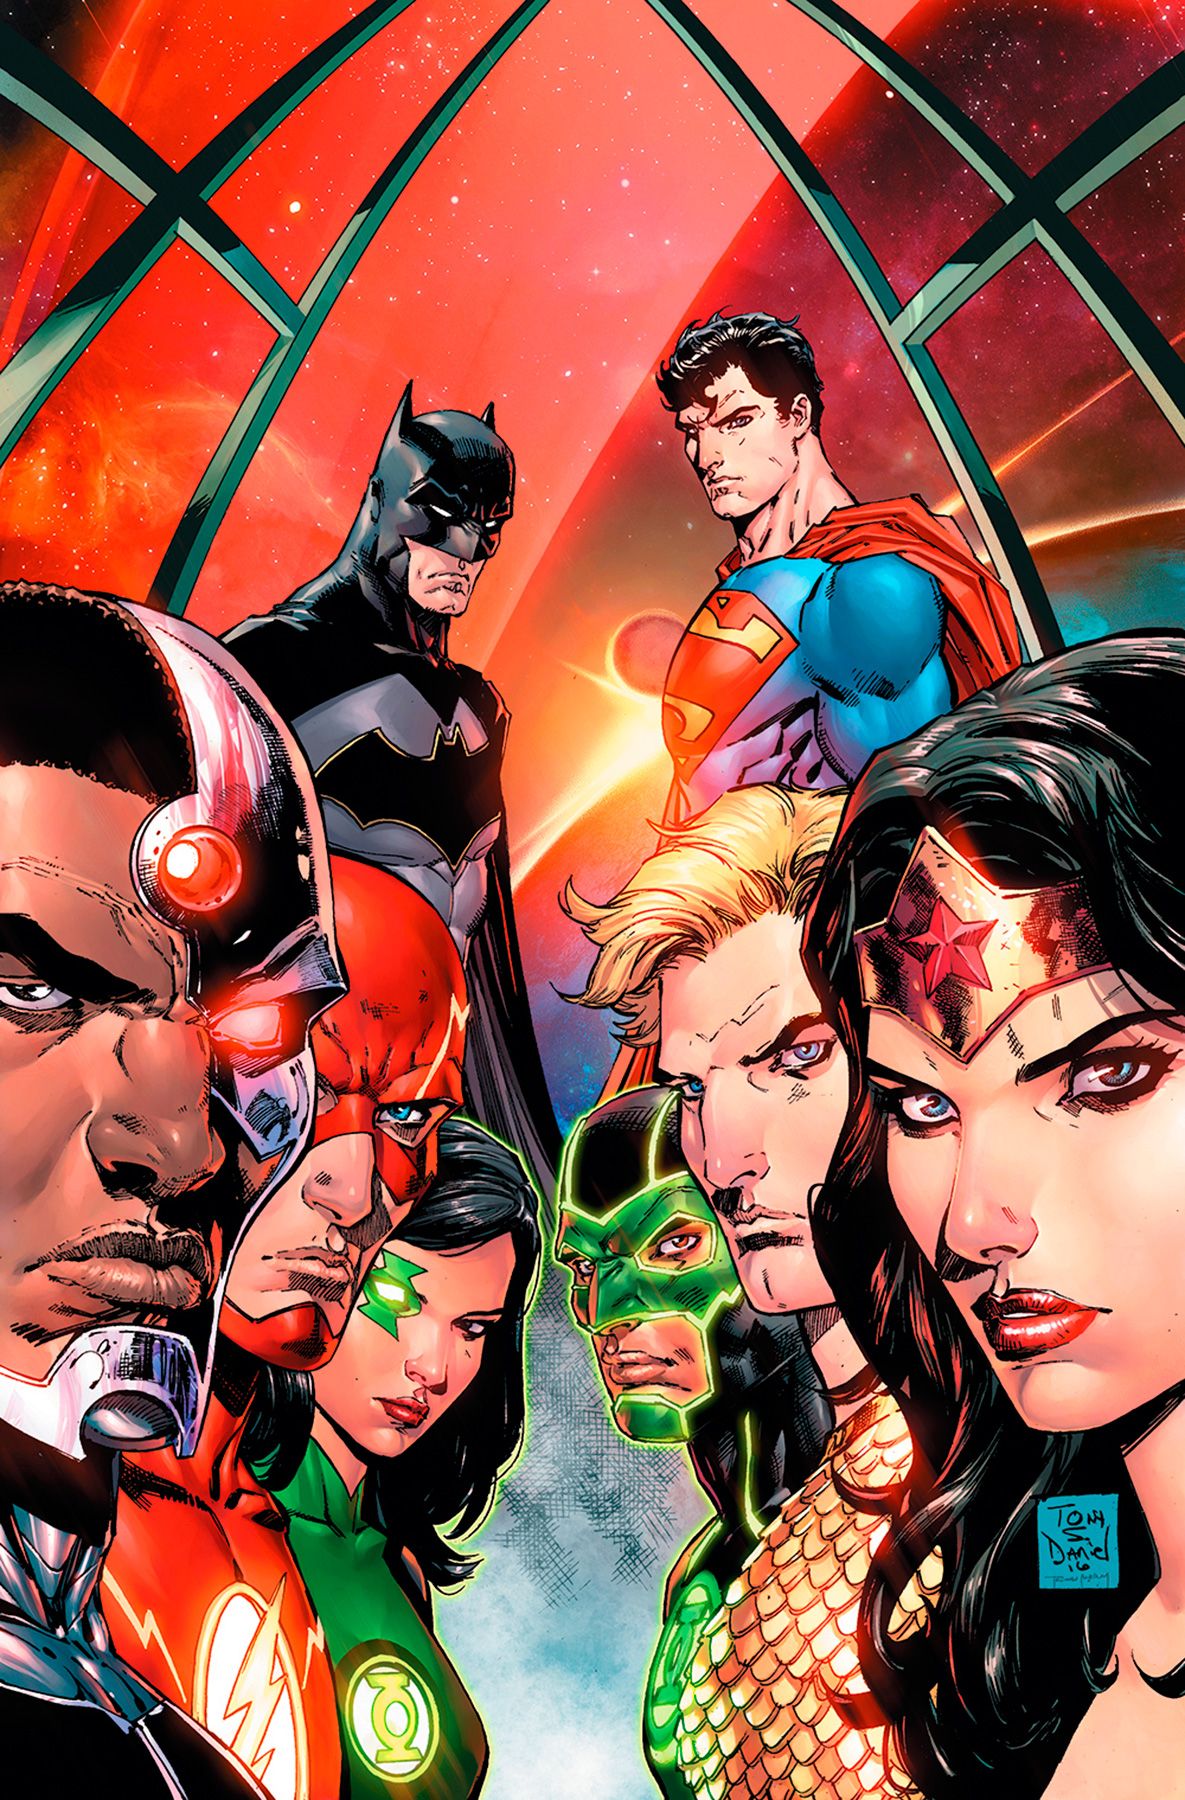 A (brief) history of the Justice League – in all its incarnations